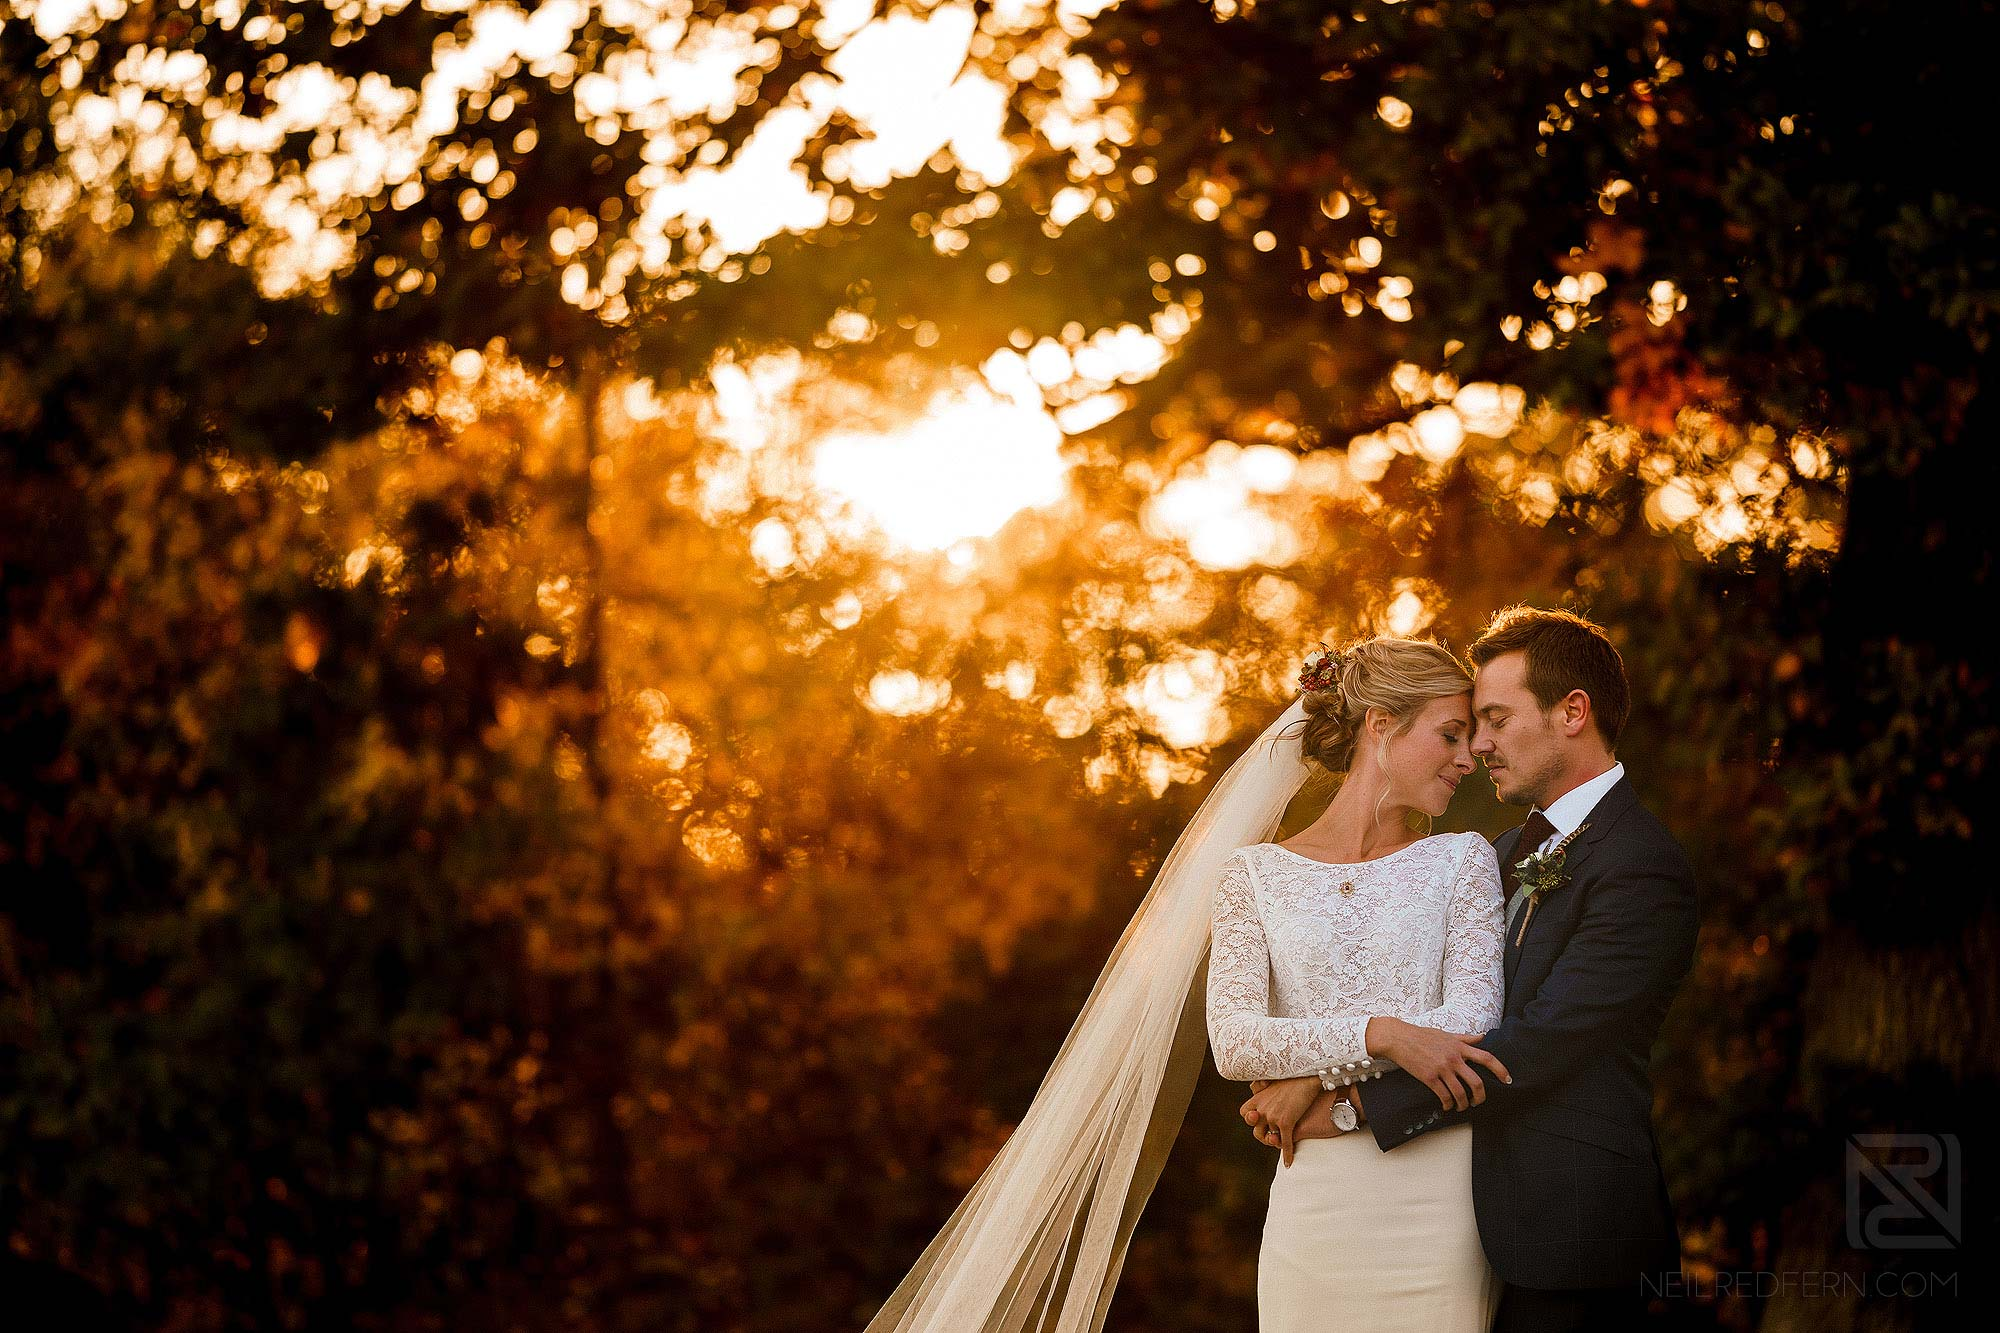 beautiful newlywed portrait of bride and groom at sunset